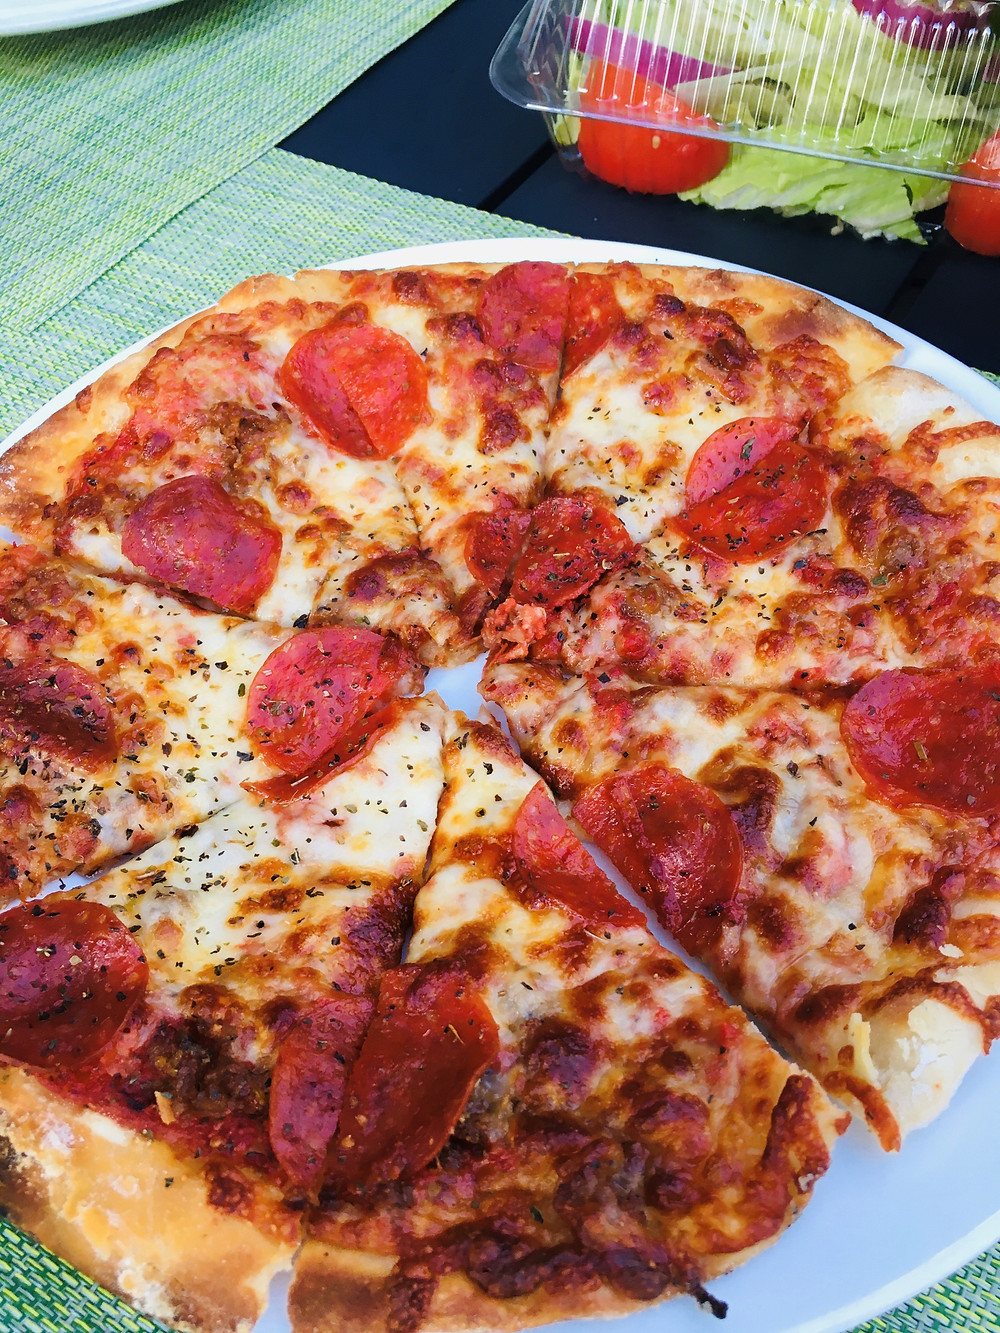 Pepperoni & Sausage Pizza from Soho's at Capitol Market